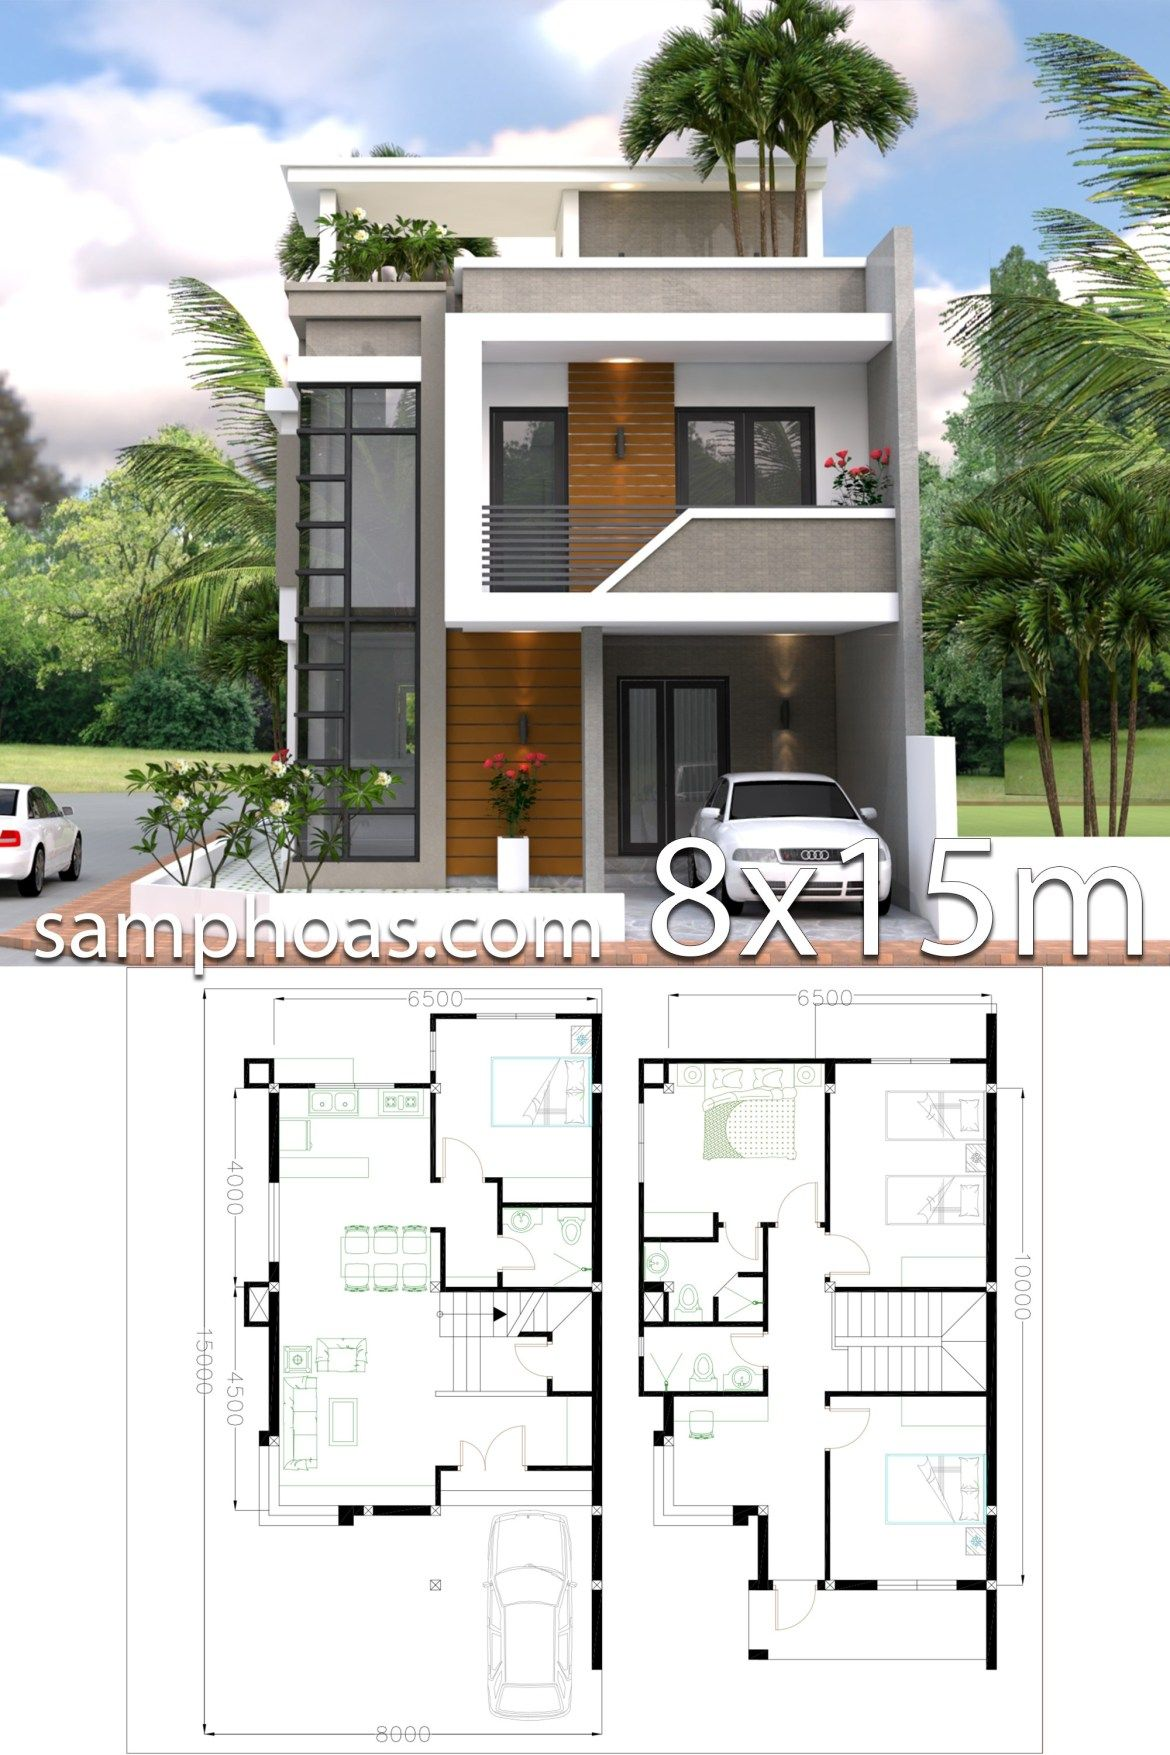 Home Design Plan 8x15m With 4 Bedrooms Small House Design Model